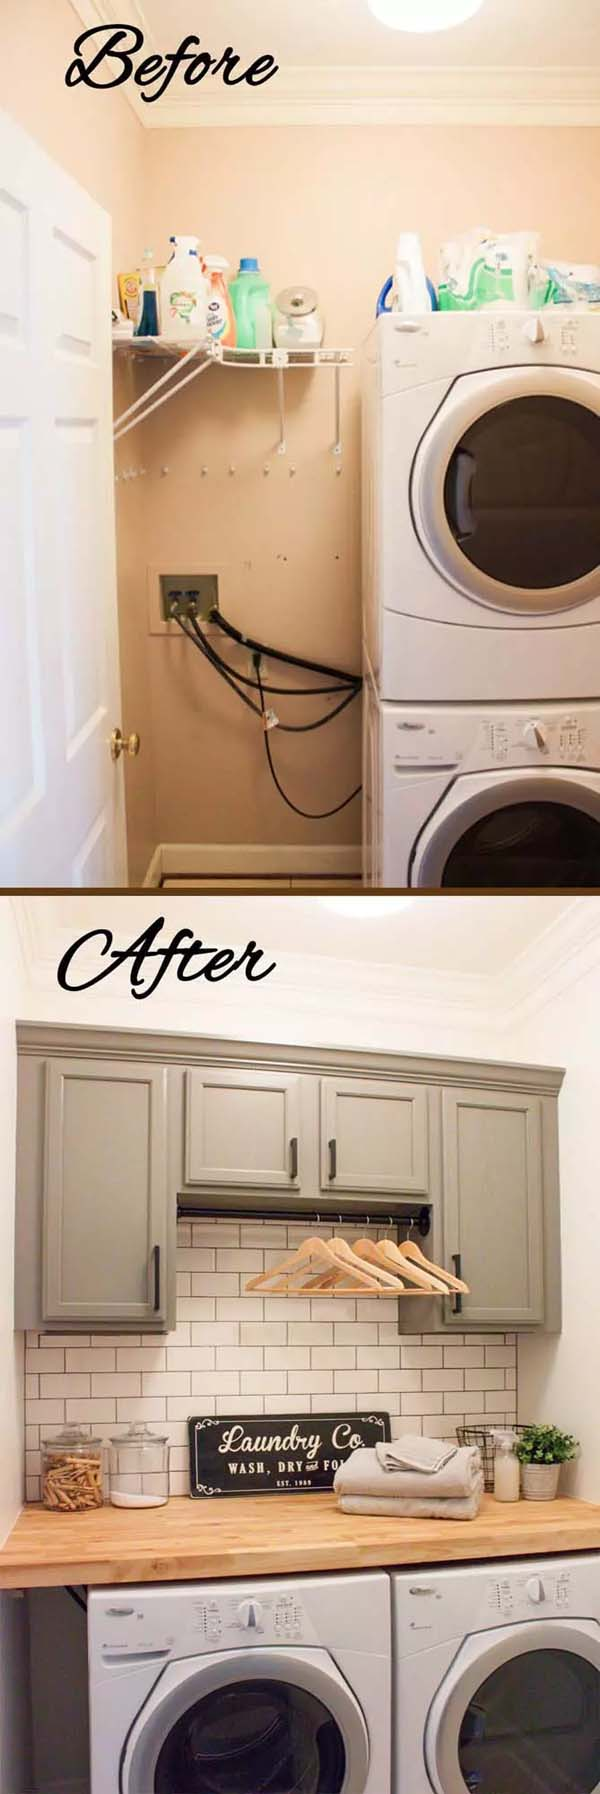 More Wood and Charm in the Laundry Room #laundryroom #makeover #homedecorimage